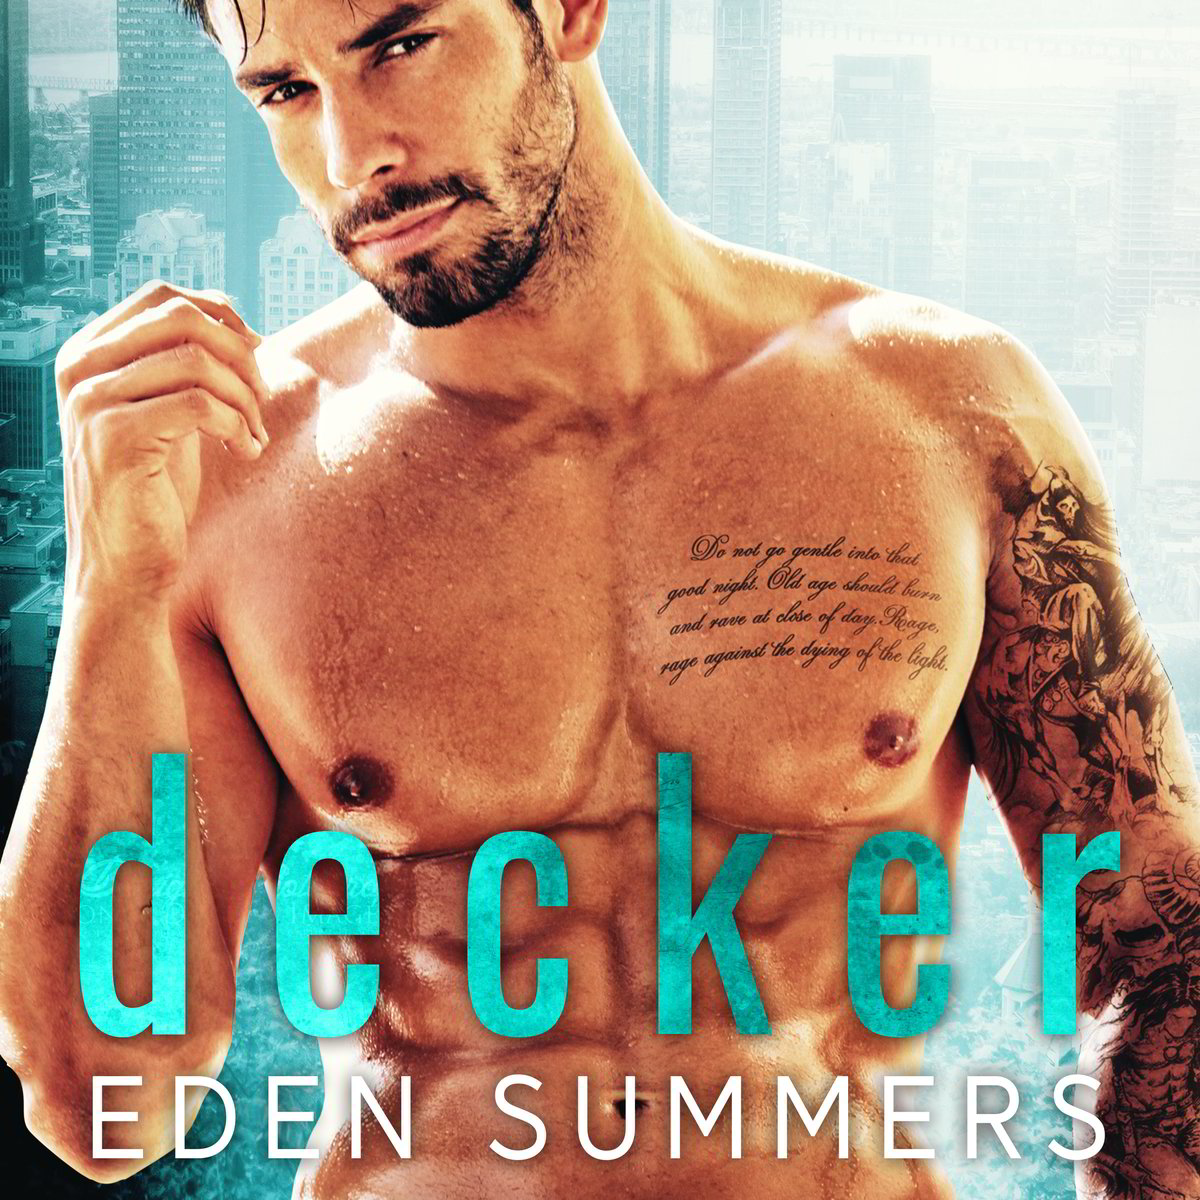 Decker Cover Image